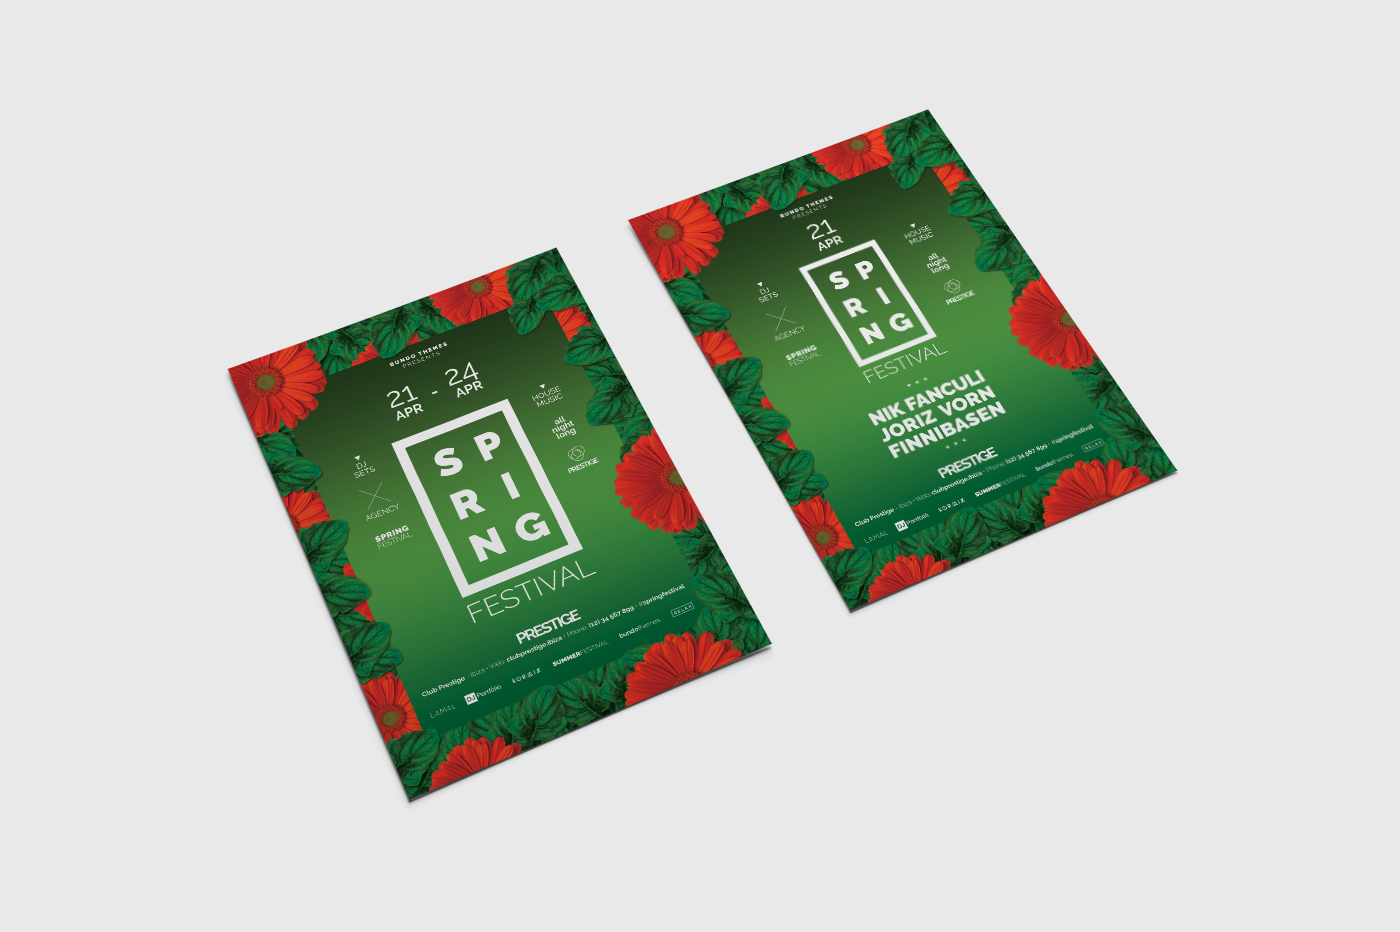 Spring Festival Flyer Template example image 6